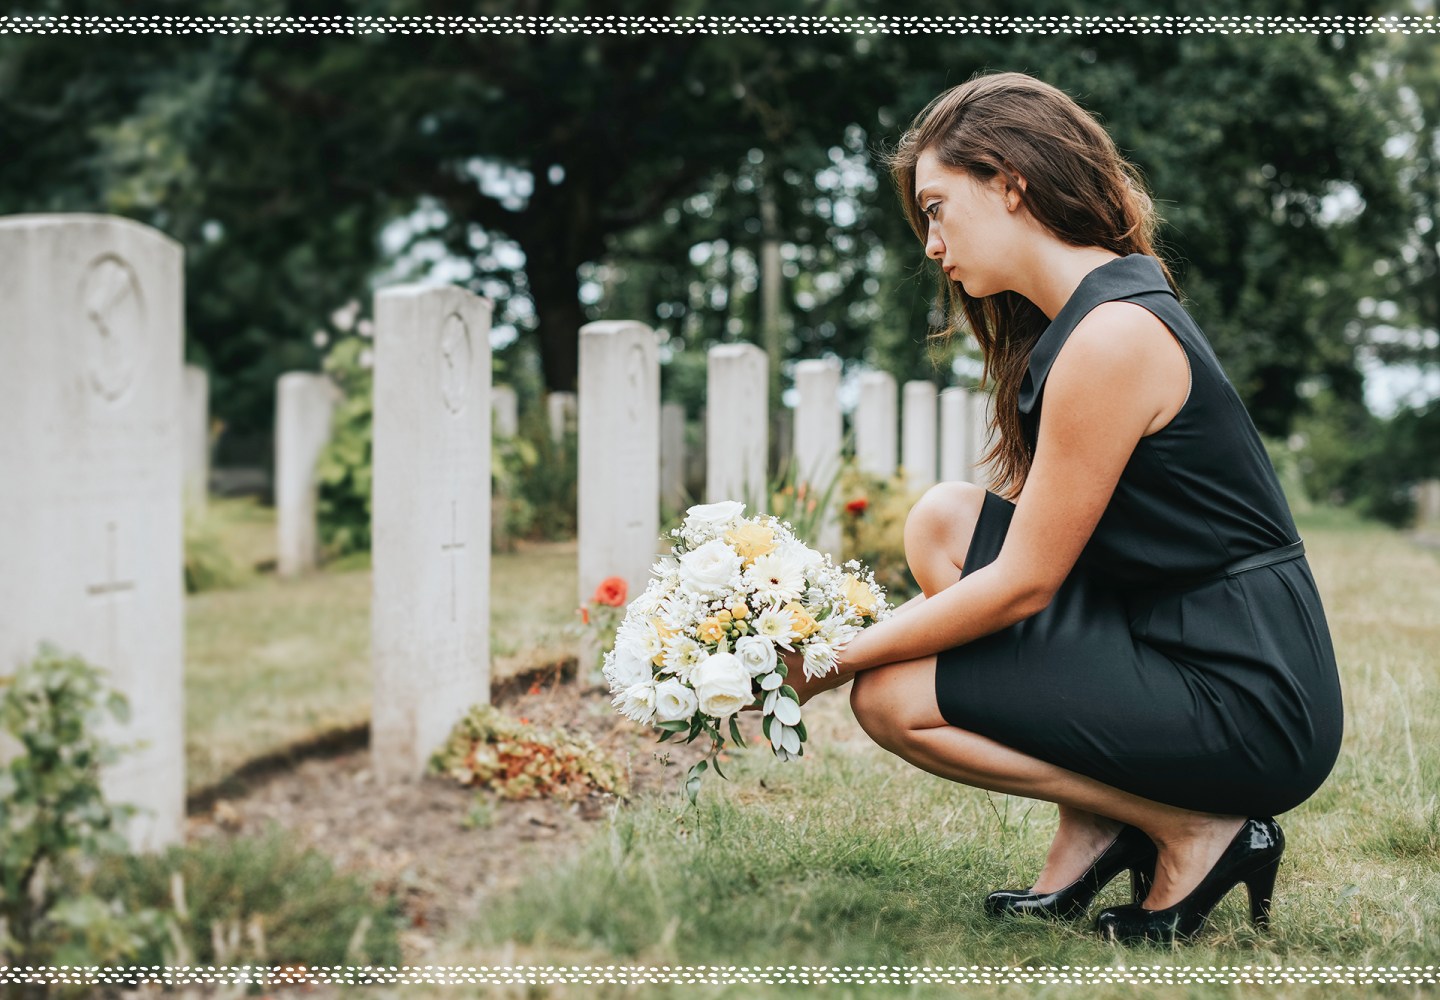 woman at funeral